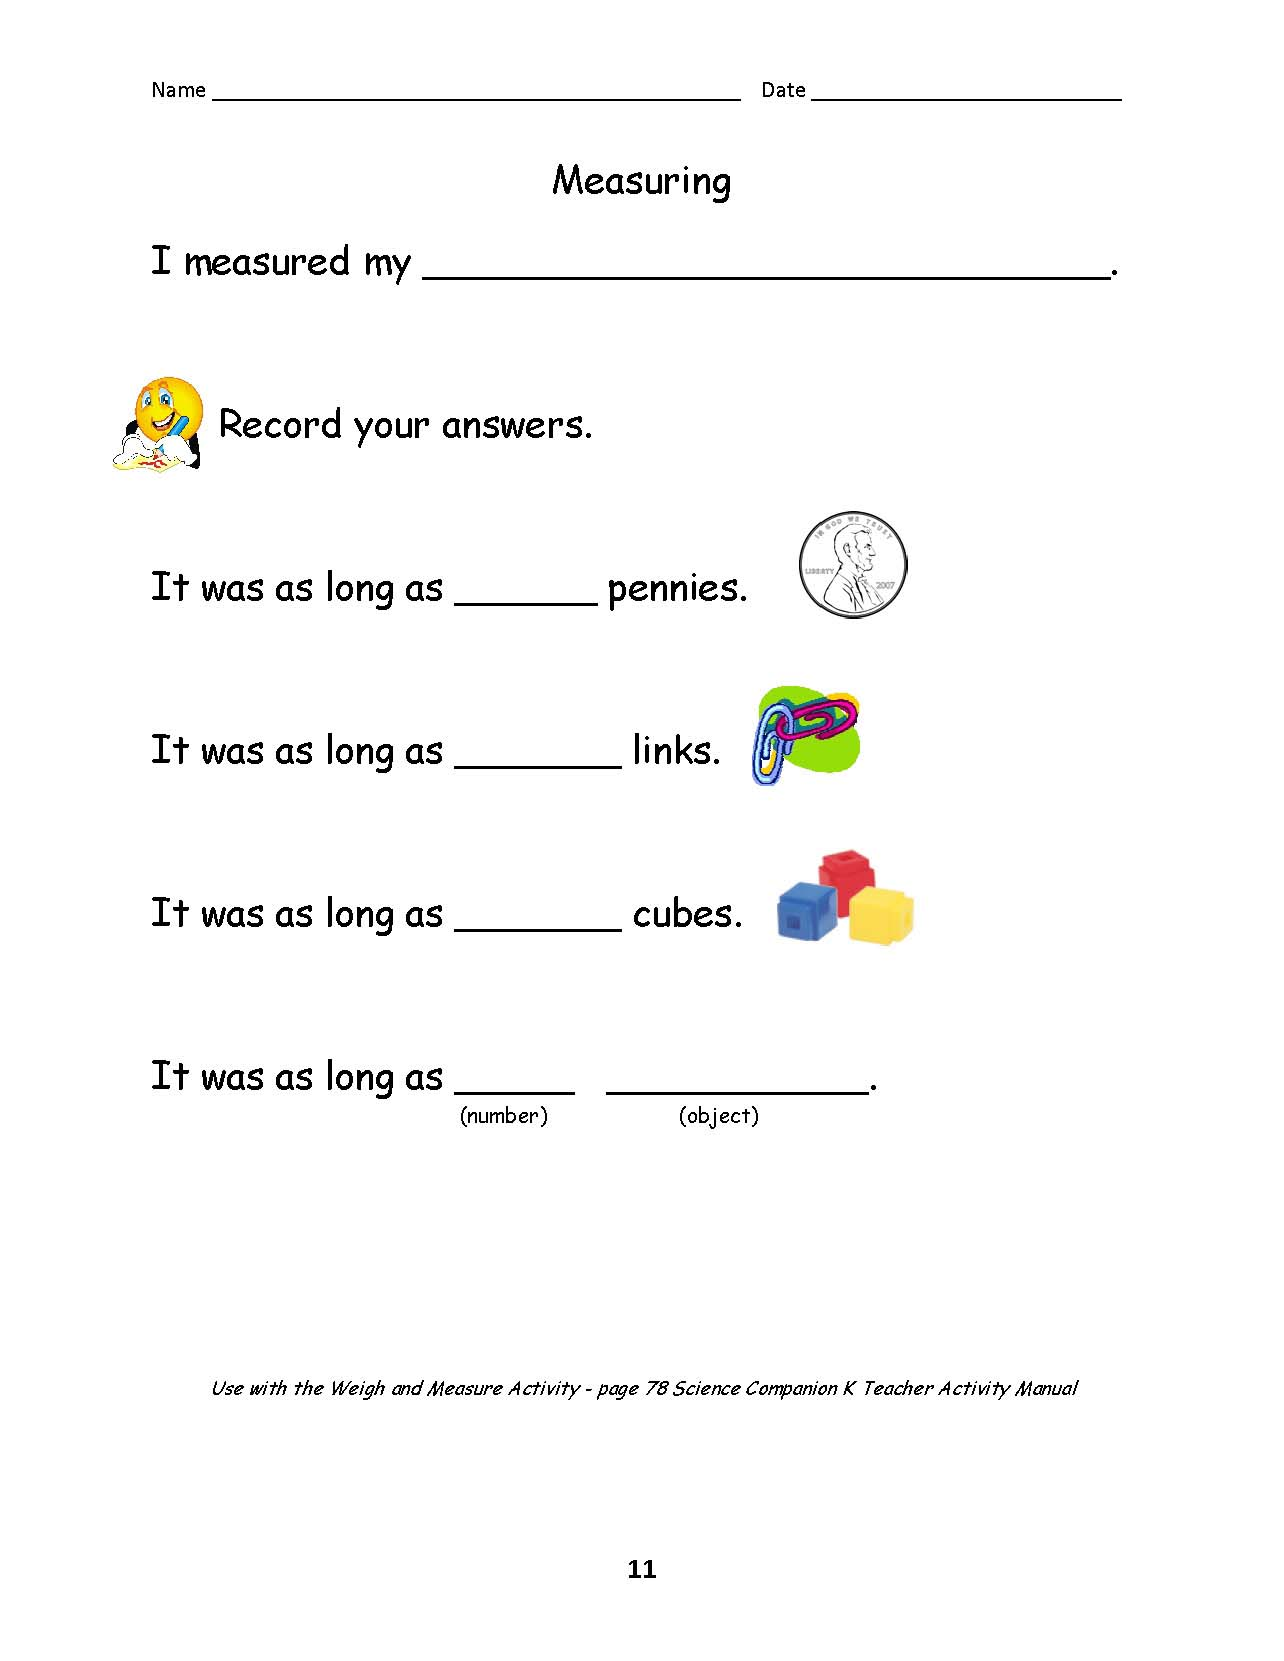 Worksheet School Home Connection Worksheets science and children online connections checklist measuring worksheet weighing worksheet